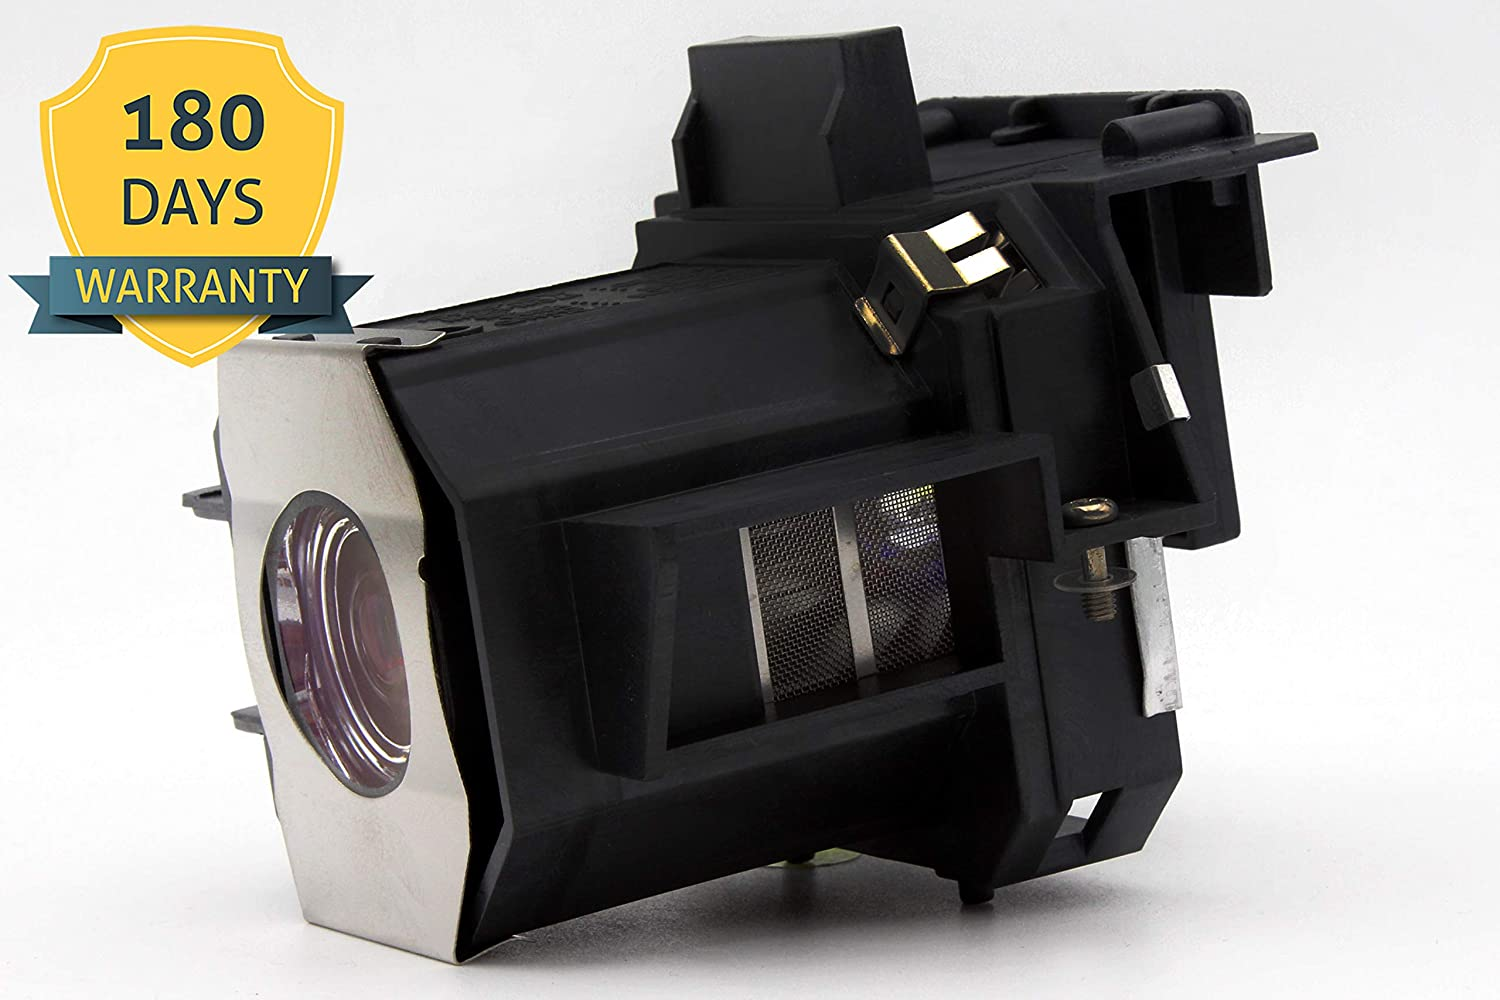 ELPLP35 / V13H010L35 Premium Compatible Projector Replacement Lamp with Housing for EPSON PowerLite Home Cinema 400;EPSON PowerLite Cinema 550 Pro Cinema 800 EMP-TW520/TW600/TW620/TW680 by Watoman